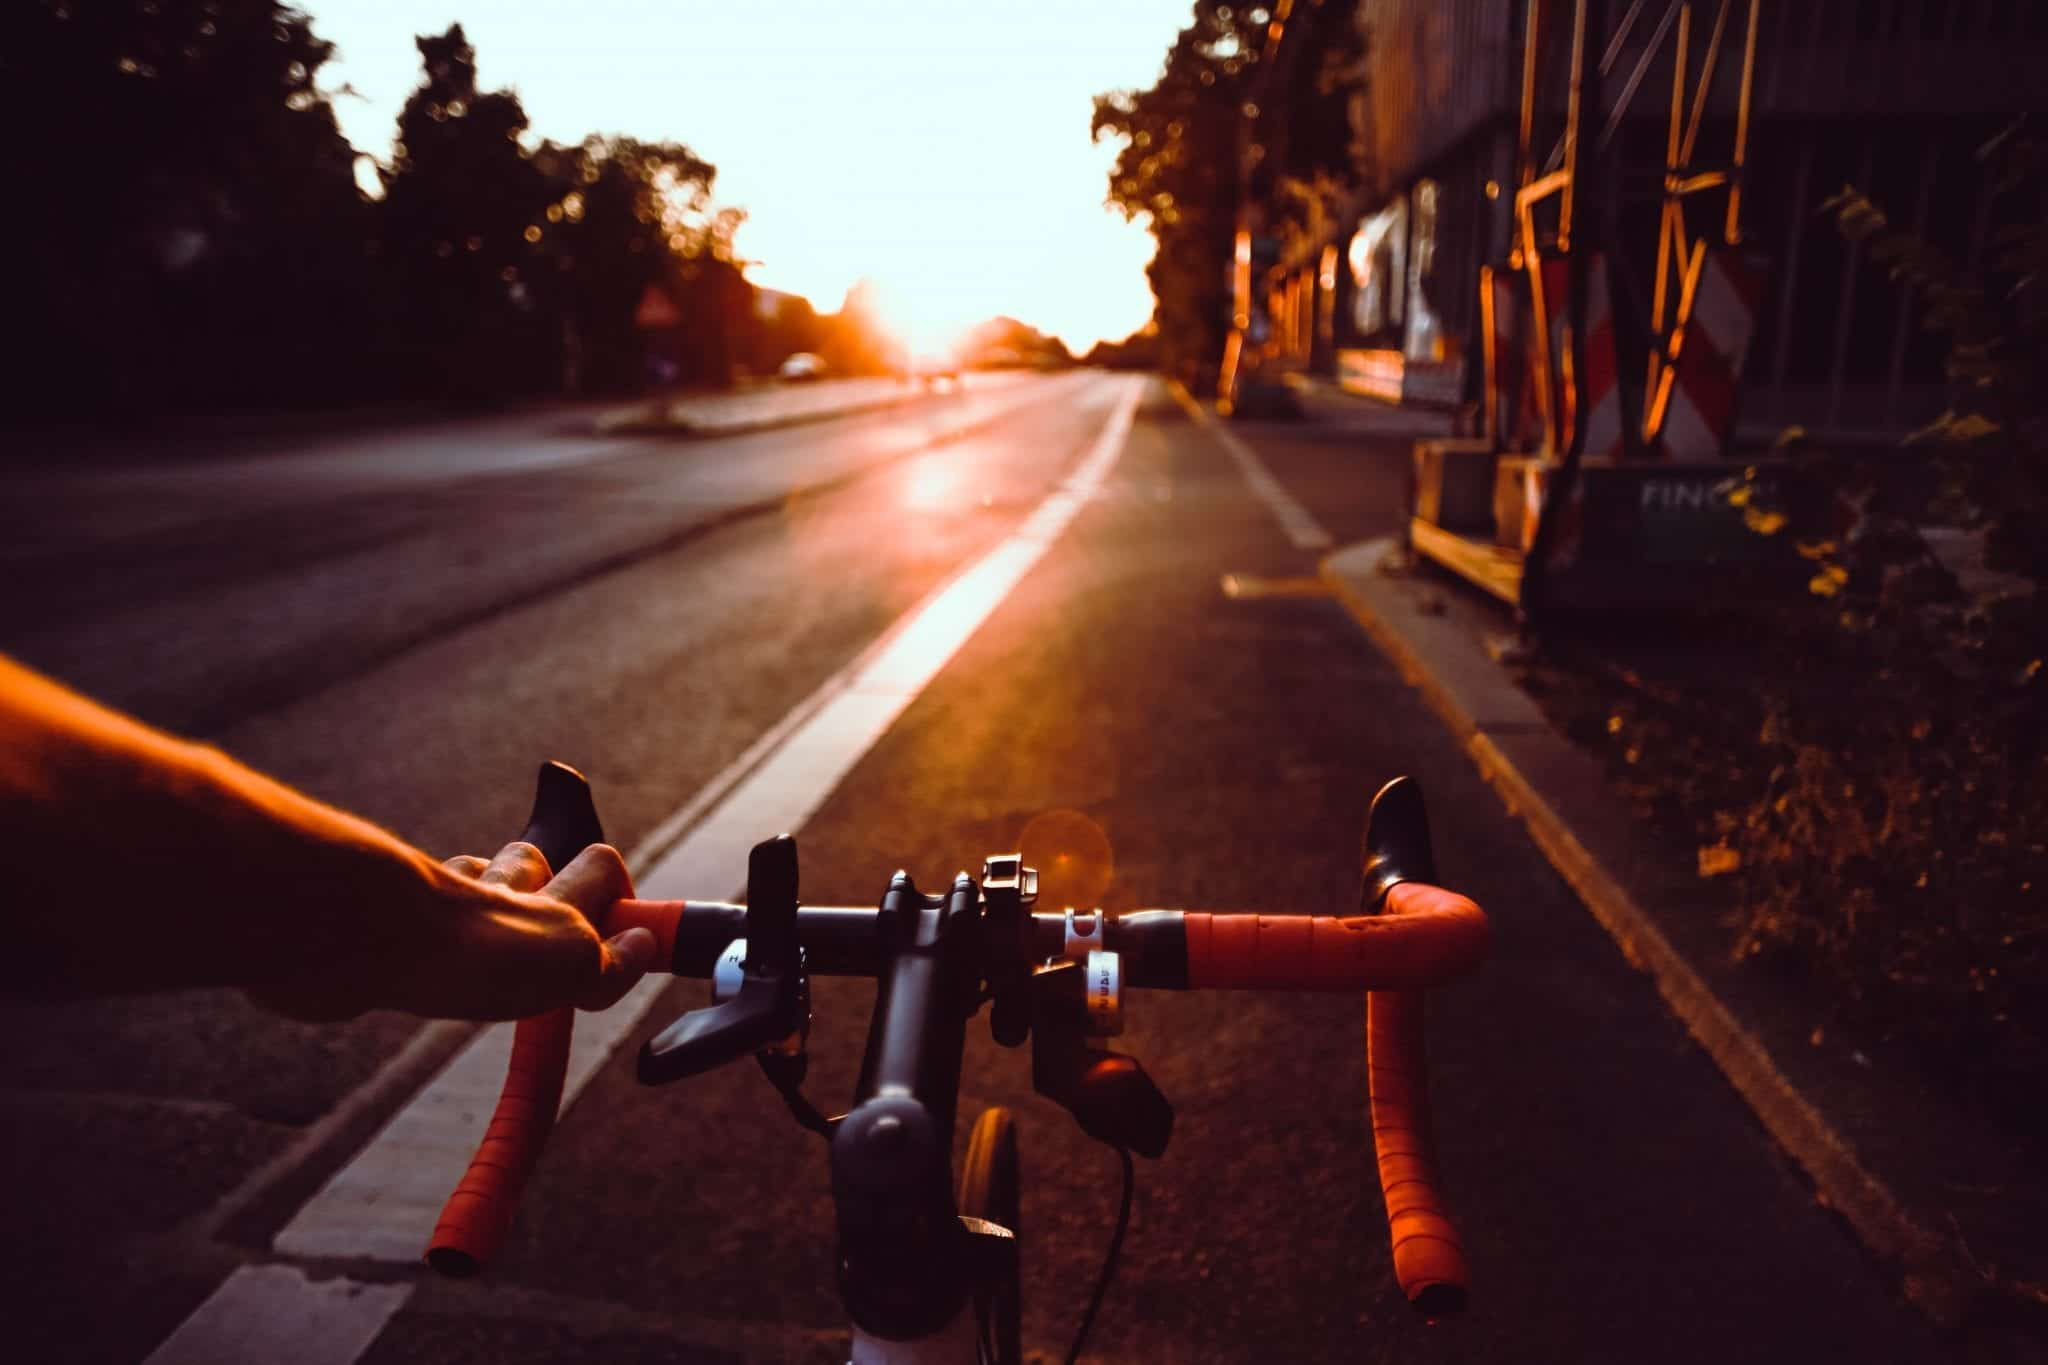 Bike lane; image by Flo Karr, via Unsplash.com.